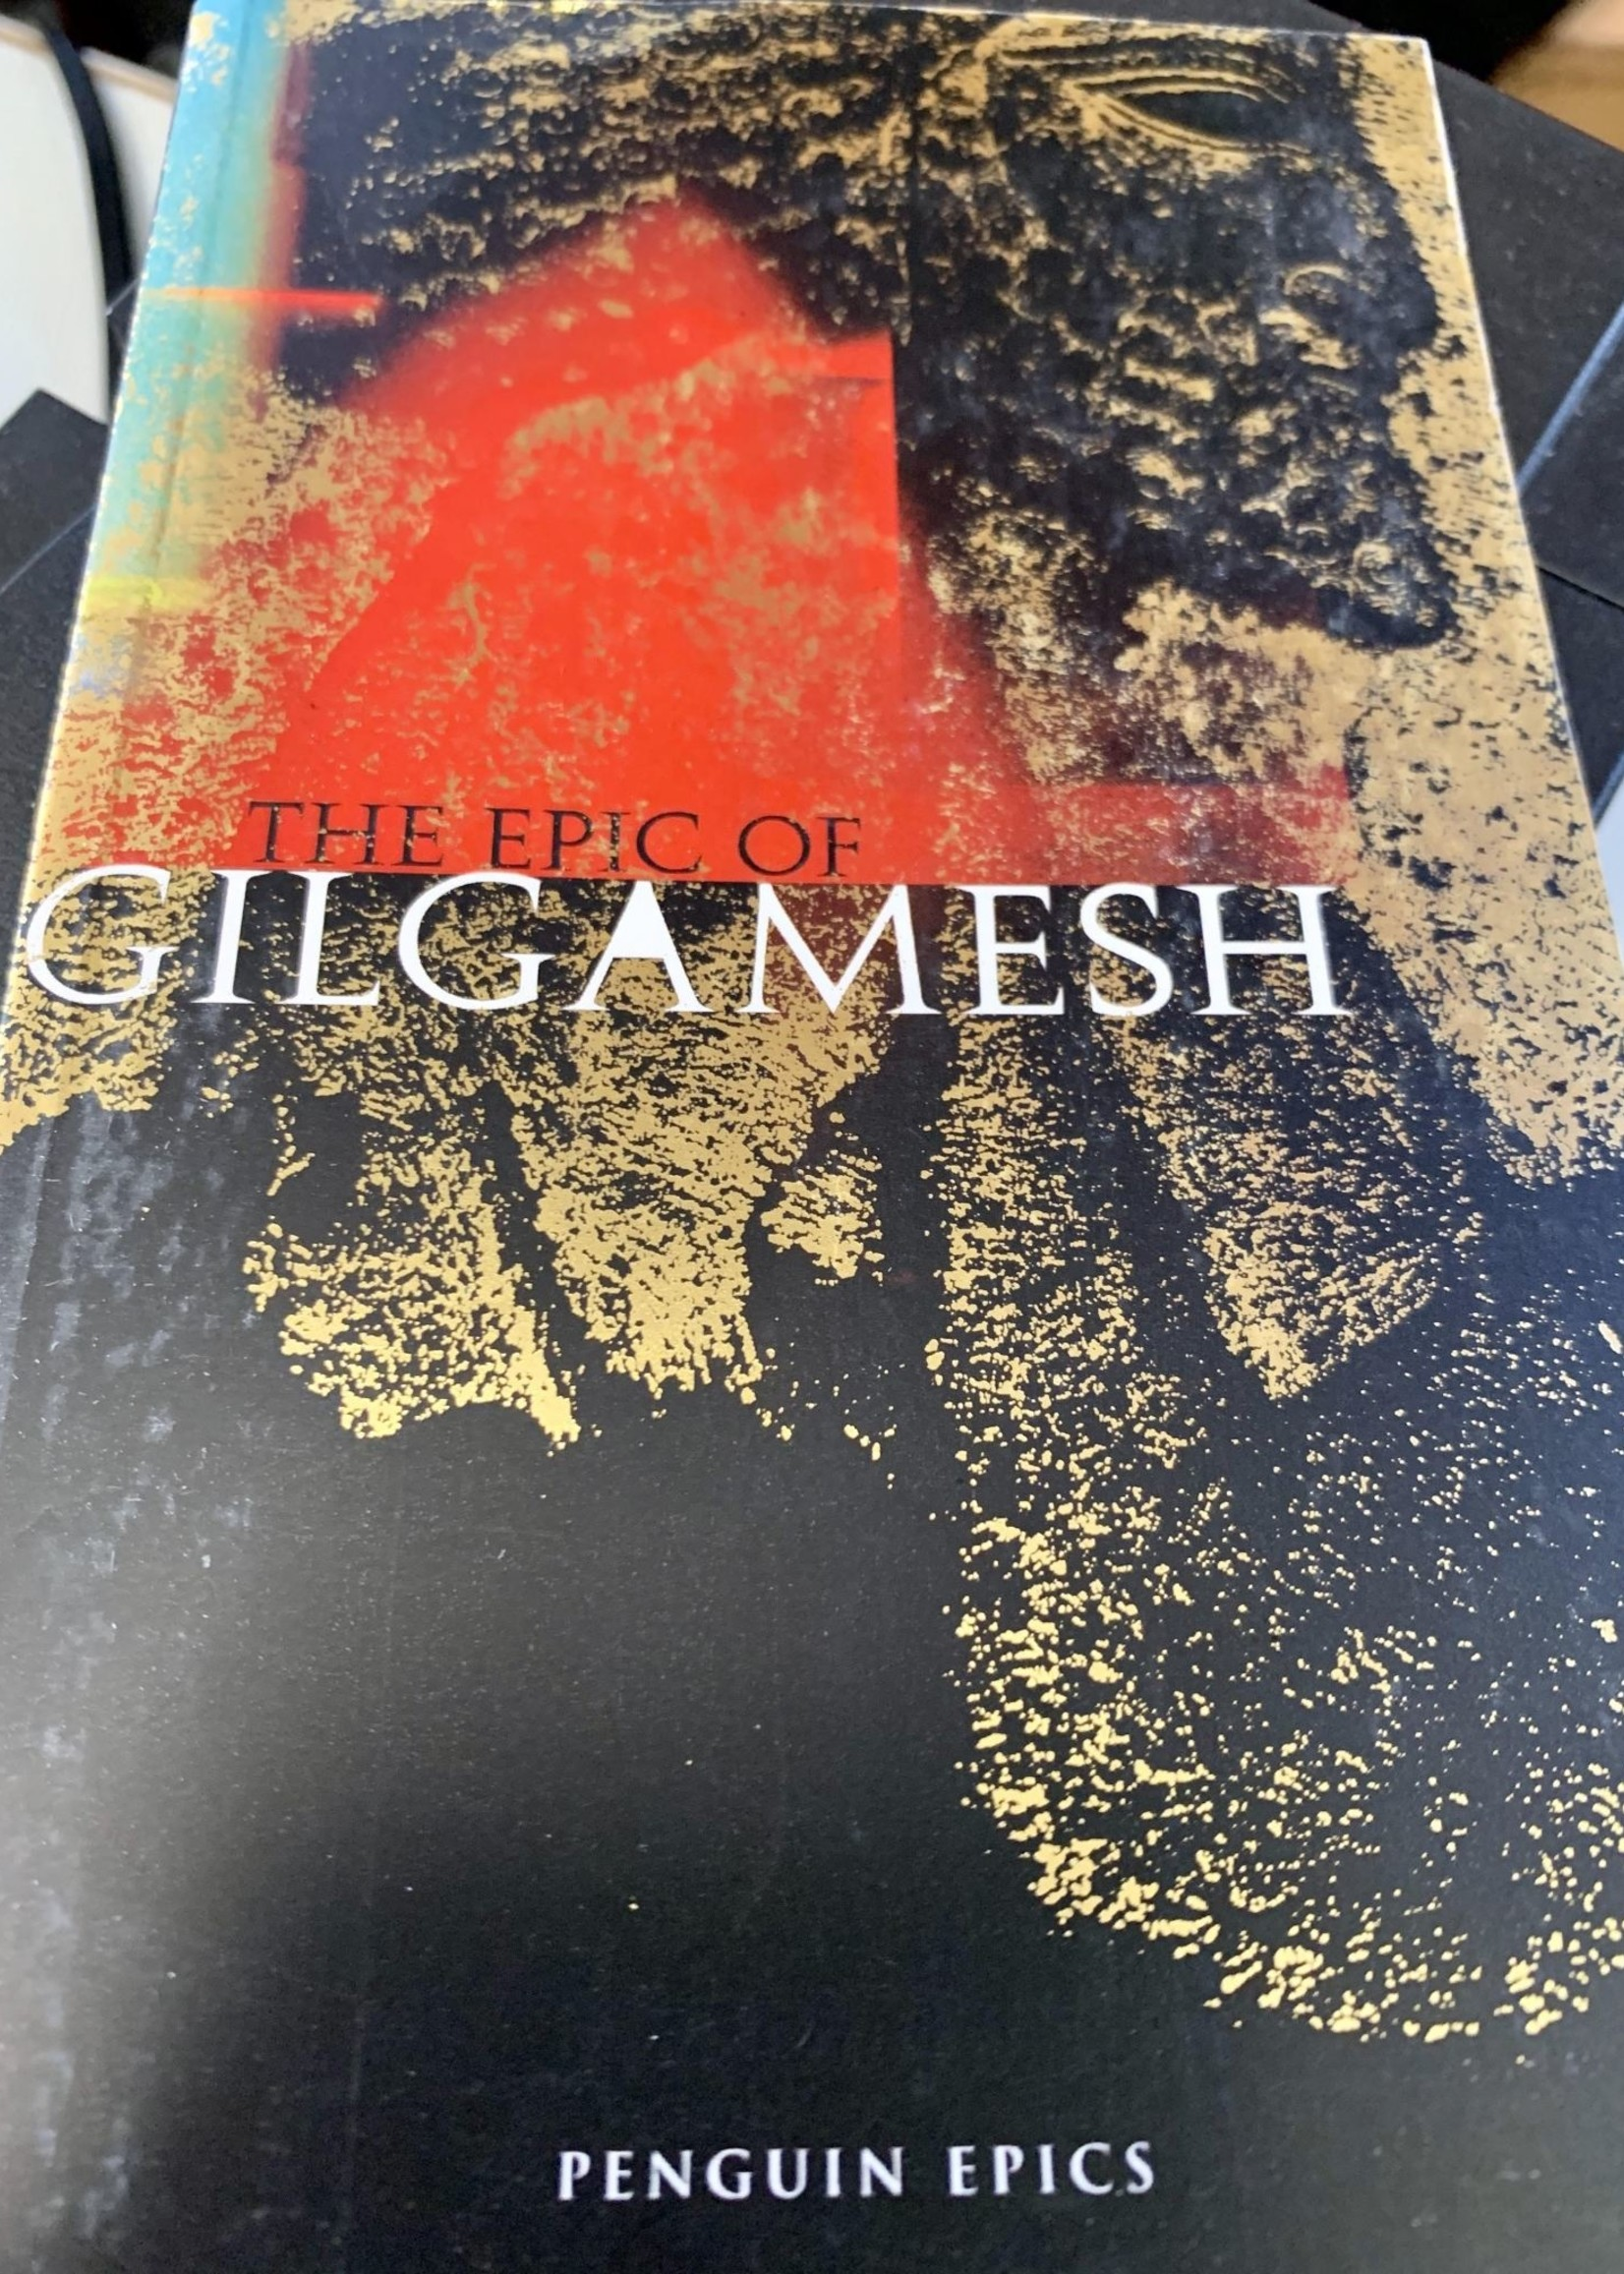 The Epic of Gilgamesh - Introduction by Russ Kick Translated by Kent H. Dixon